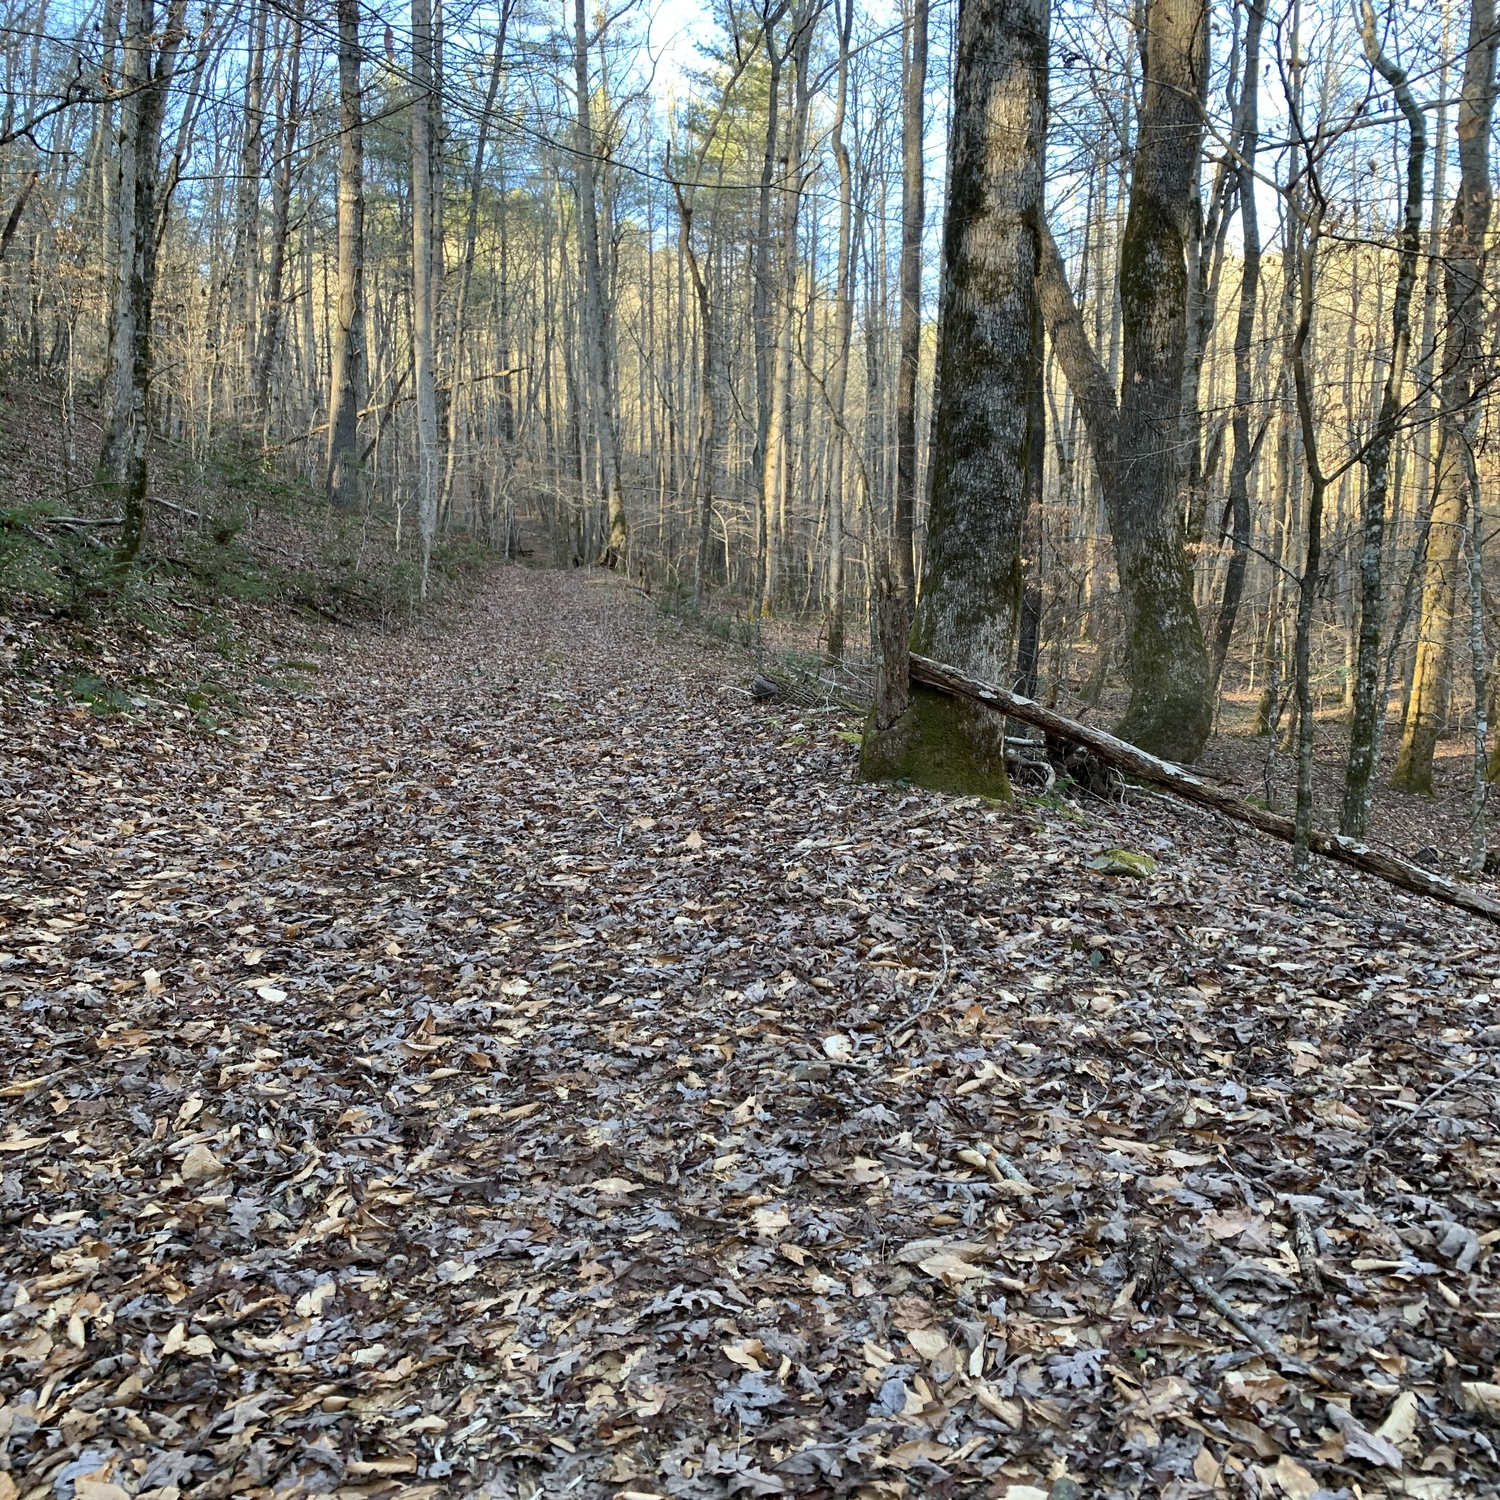 Logging roads run throughout the property